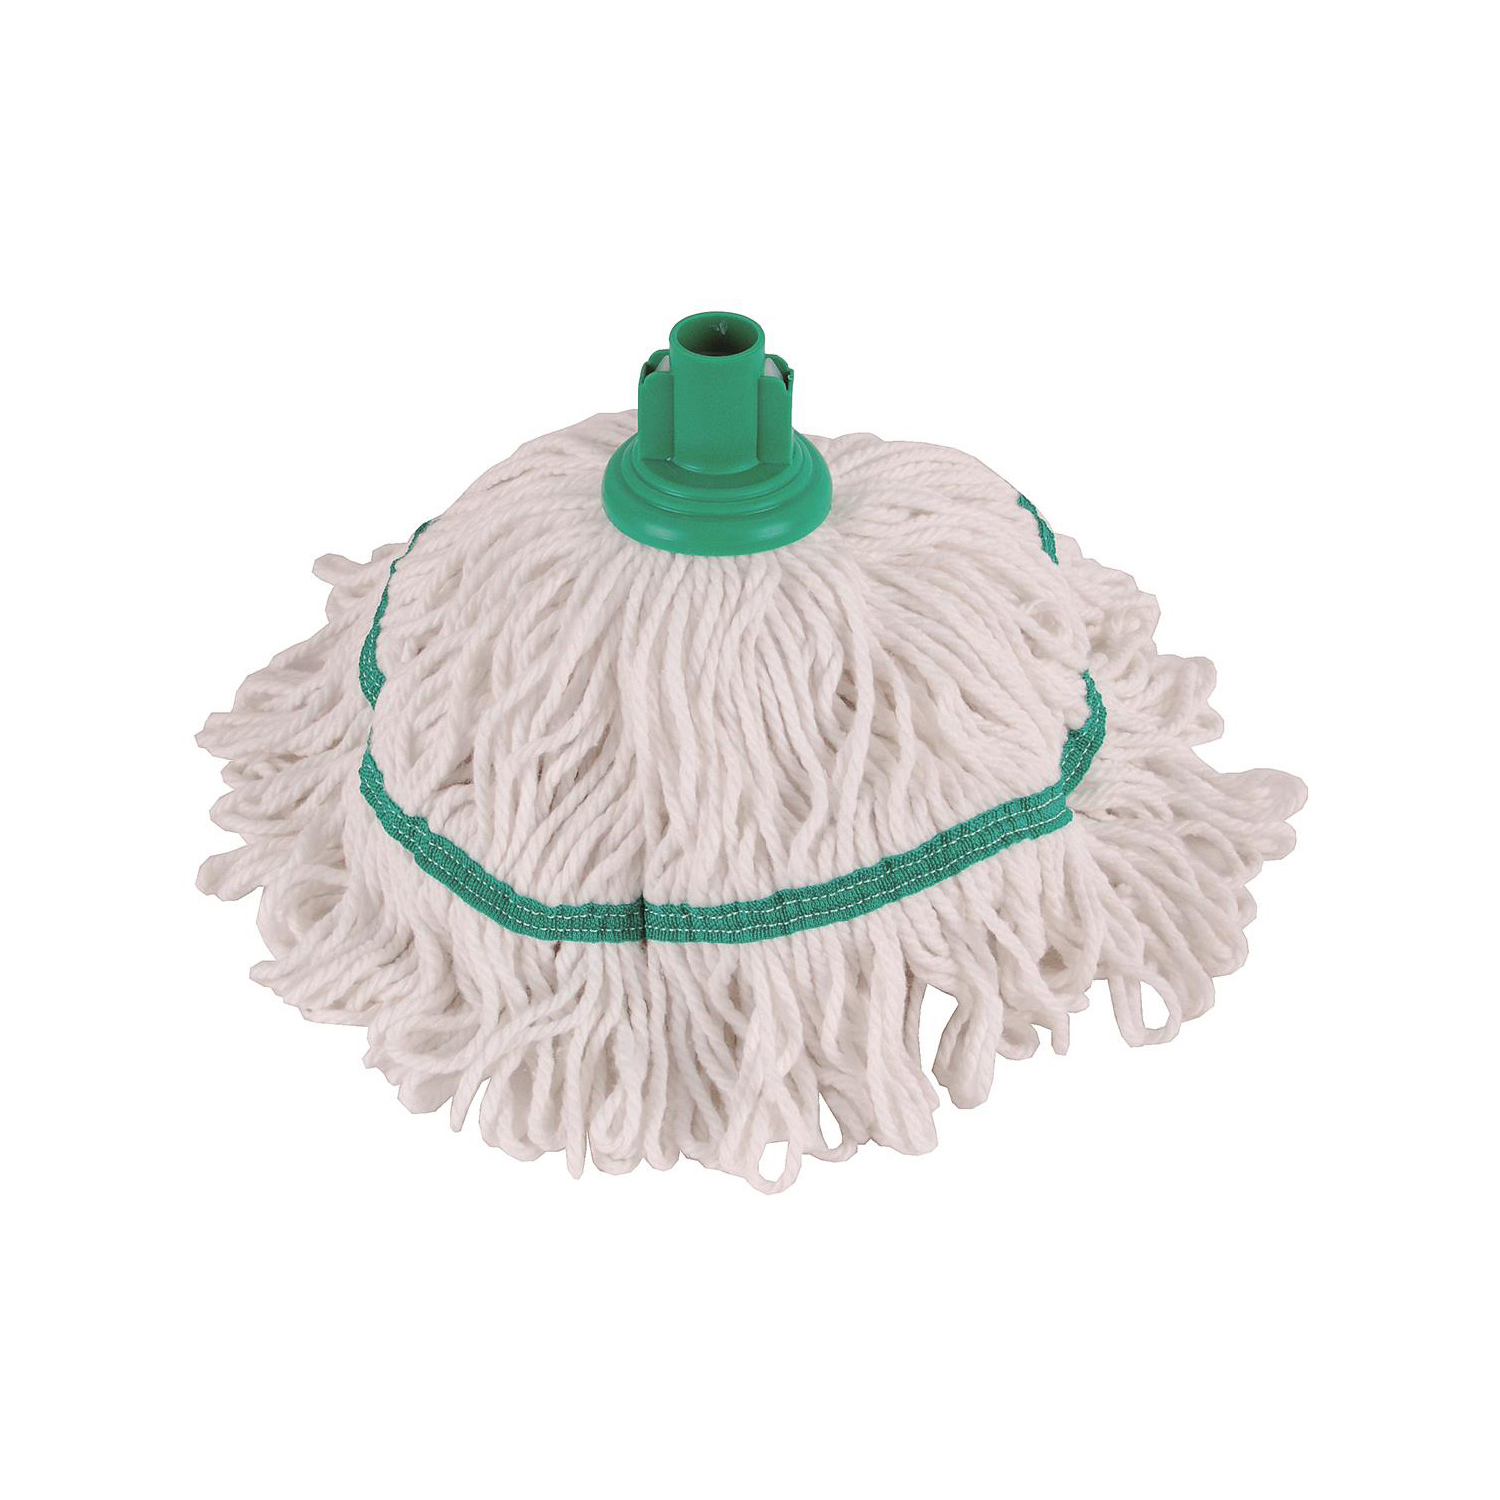 Mop heads Robert Scott & Sons Hygiemix T1 Socket Cotton & Synthetic Colour-coded Mop 250g Green Ref MHH250G